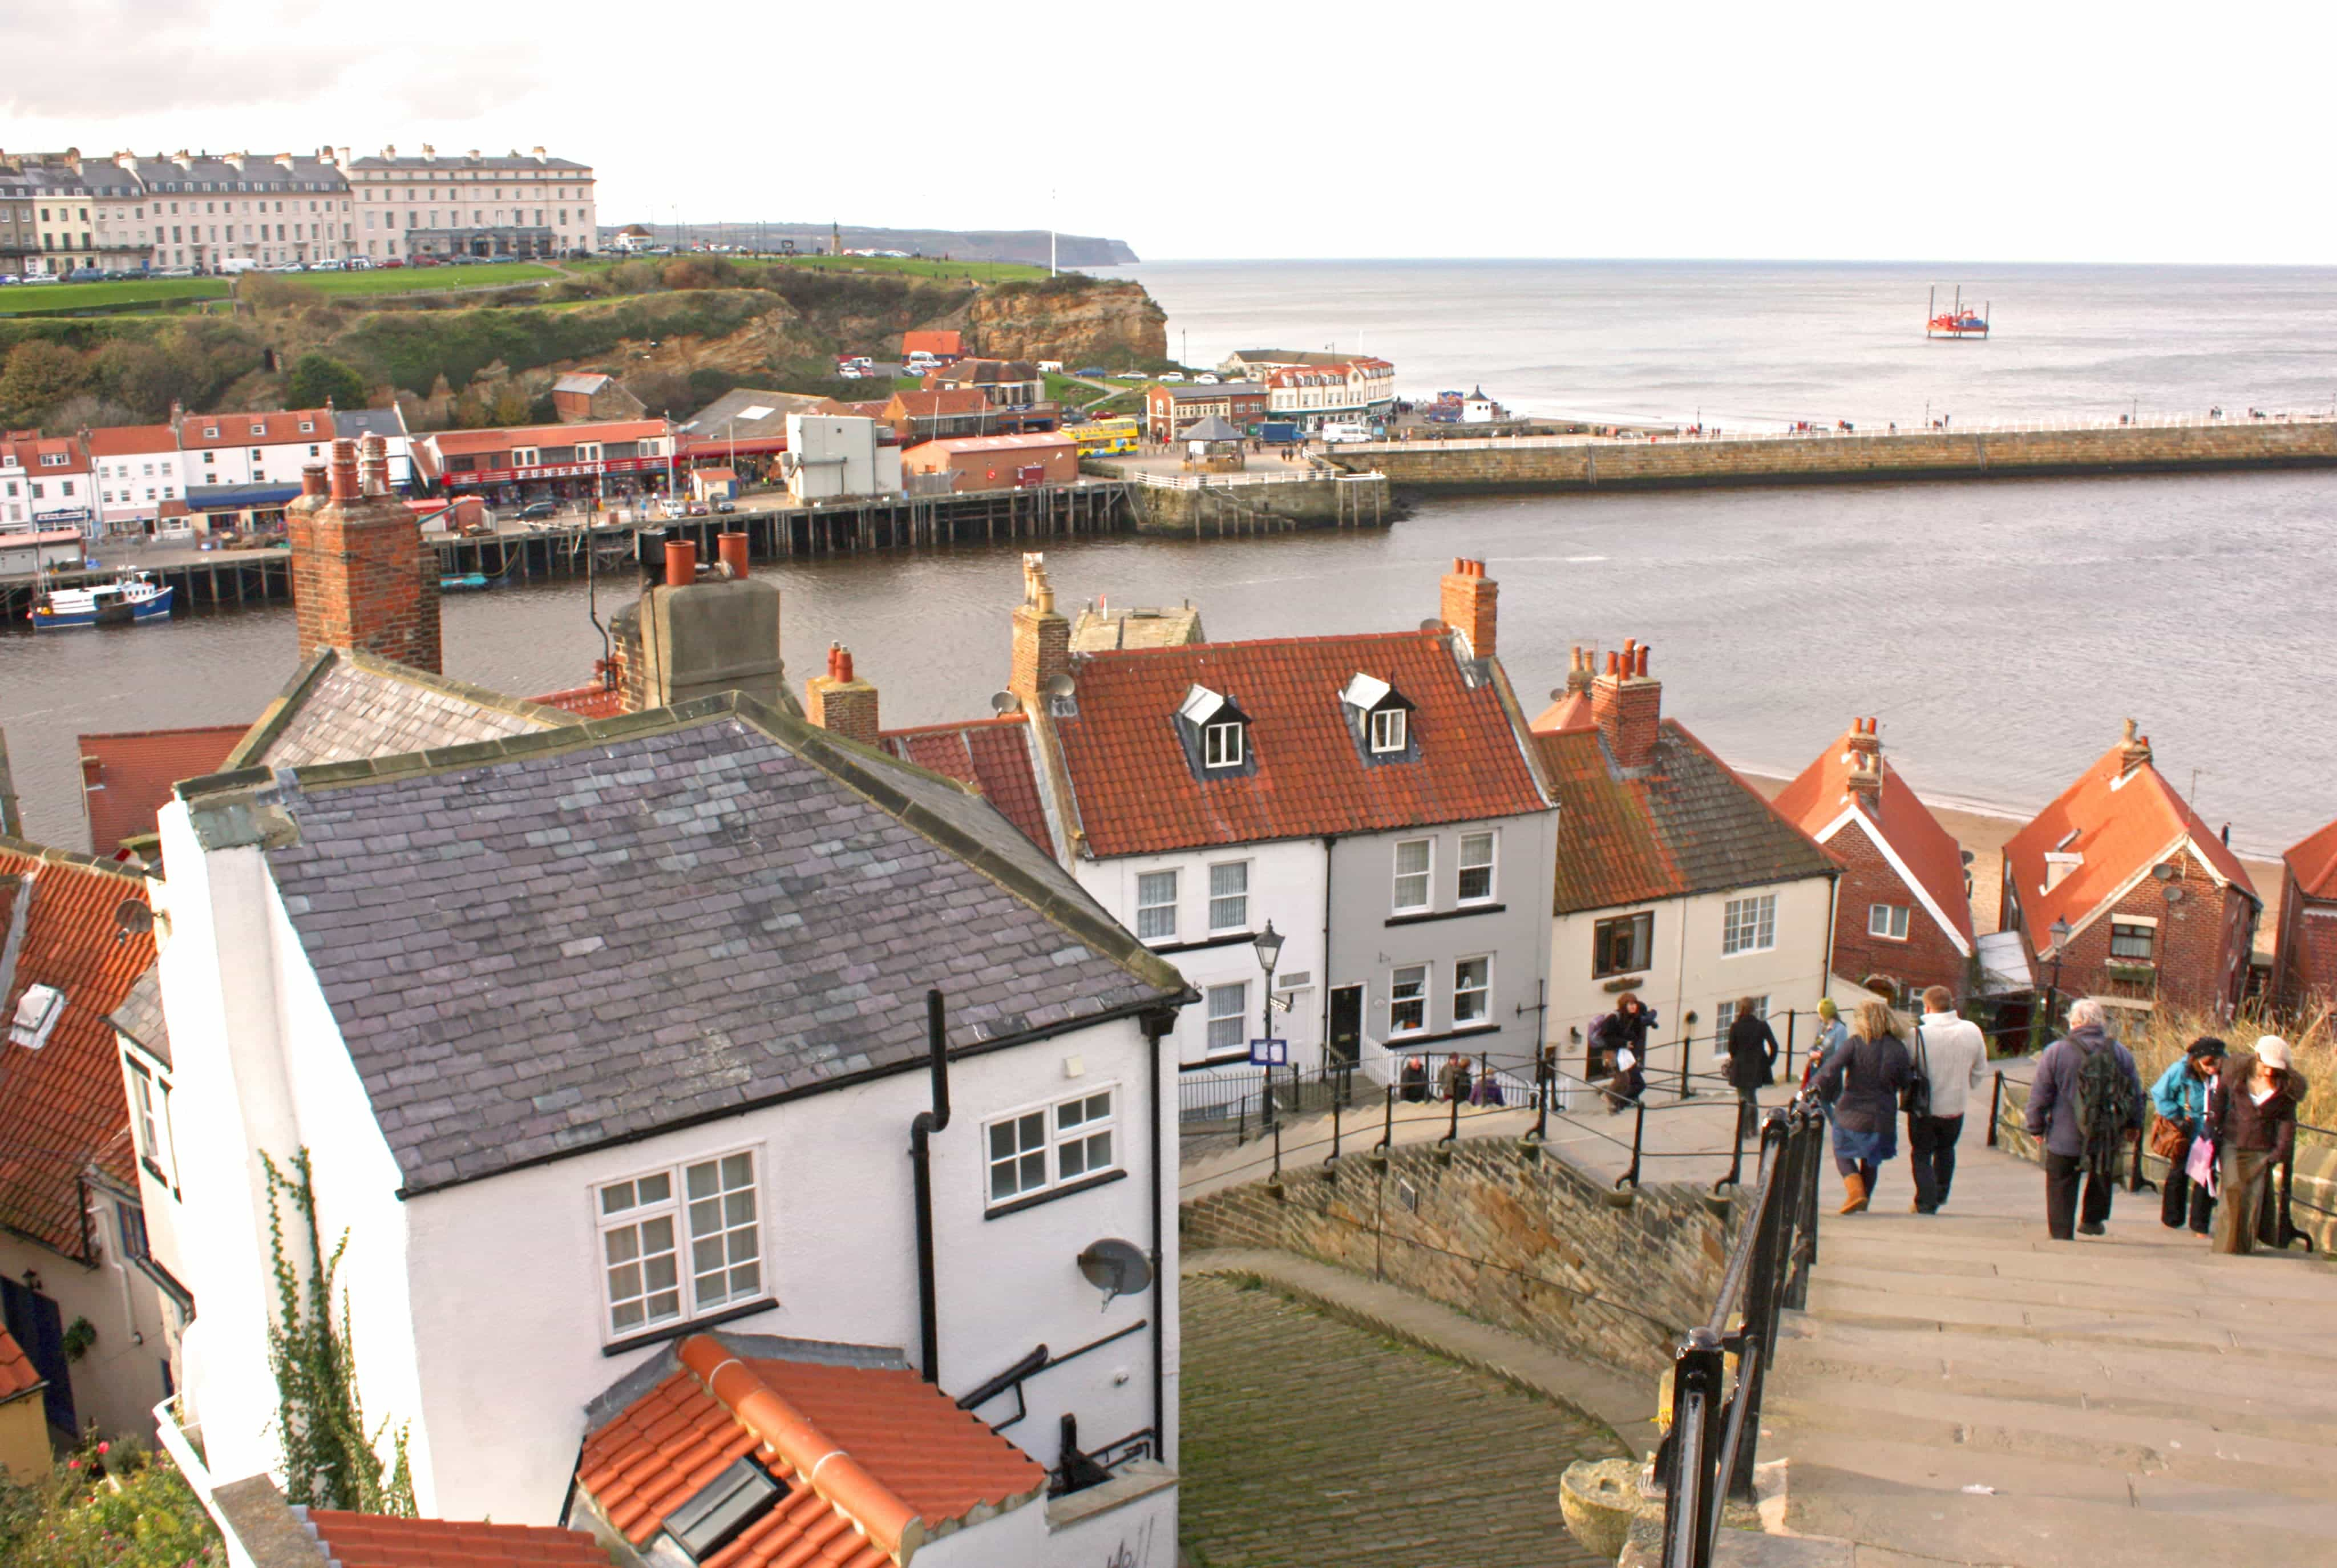 Whitby, a seaside town that coincides with our route along The Cleveland Way, North East England